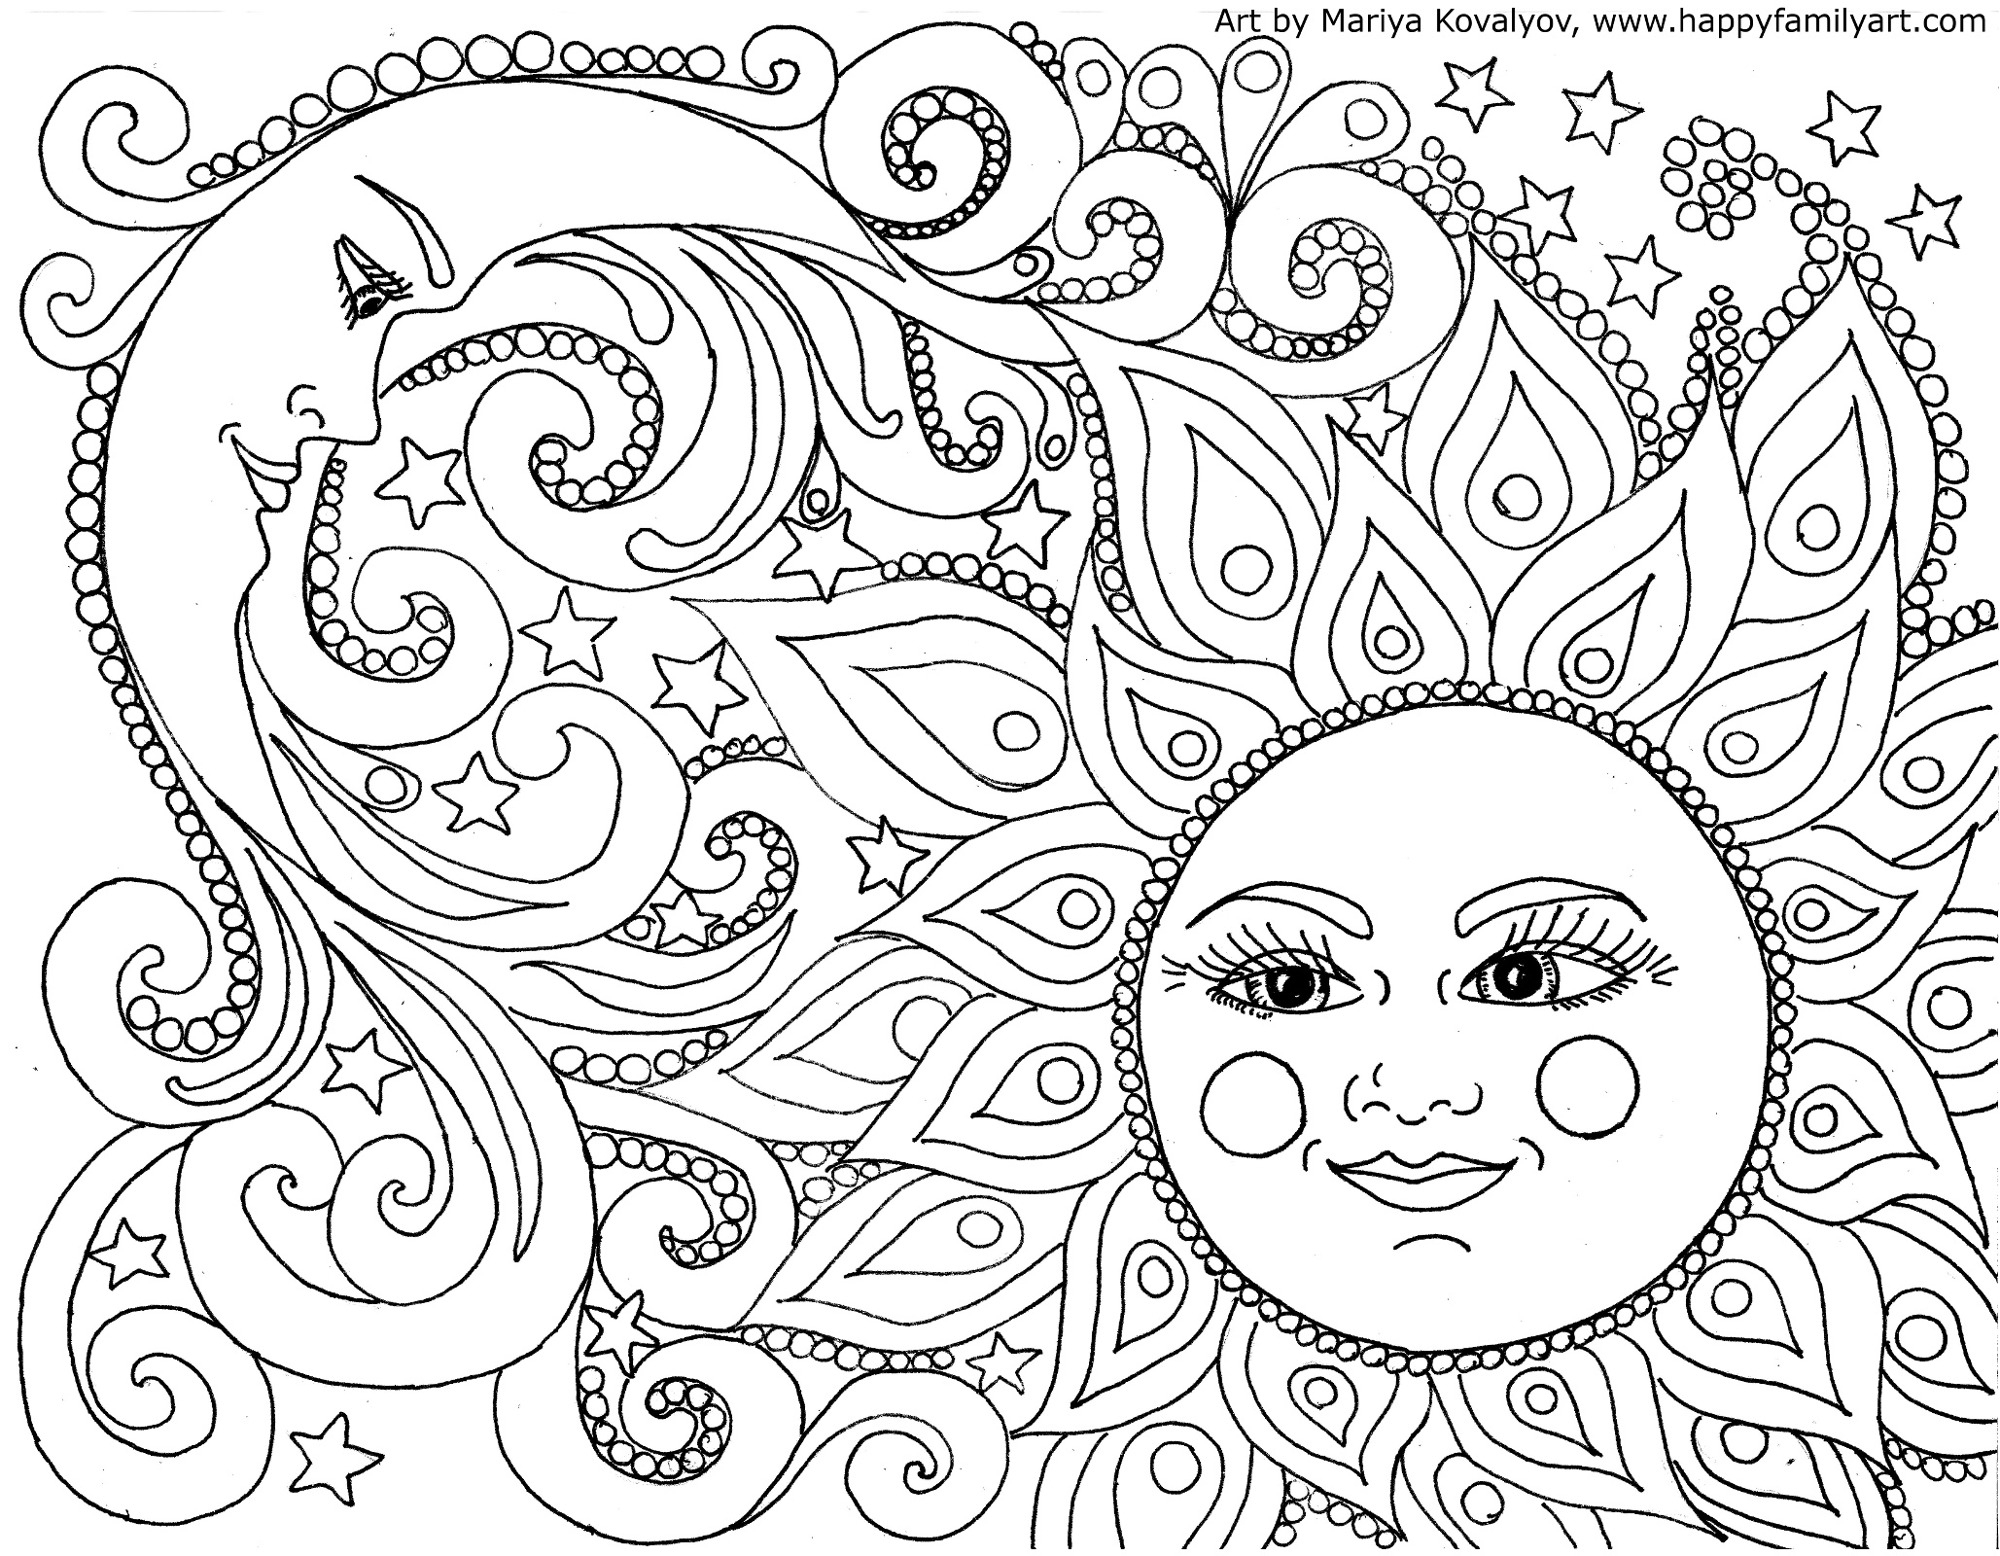 Happy Family Art - Original And Fun Coloring Pages - Free Coloring Pages Com Printable